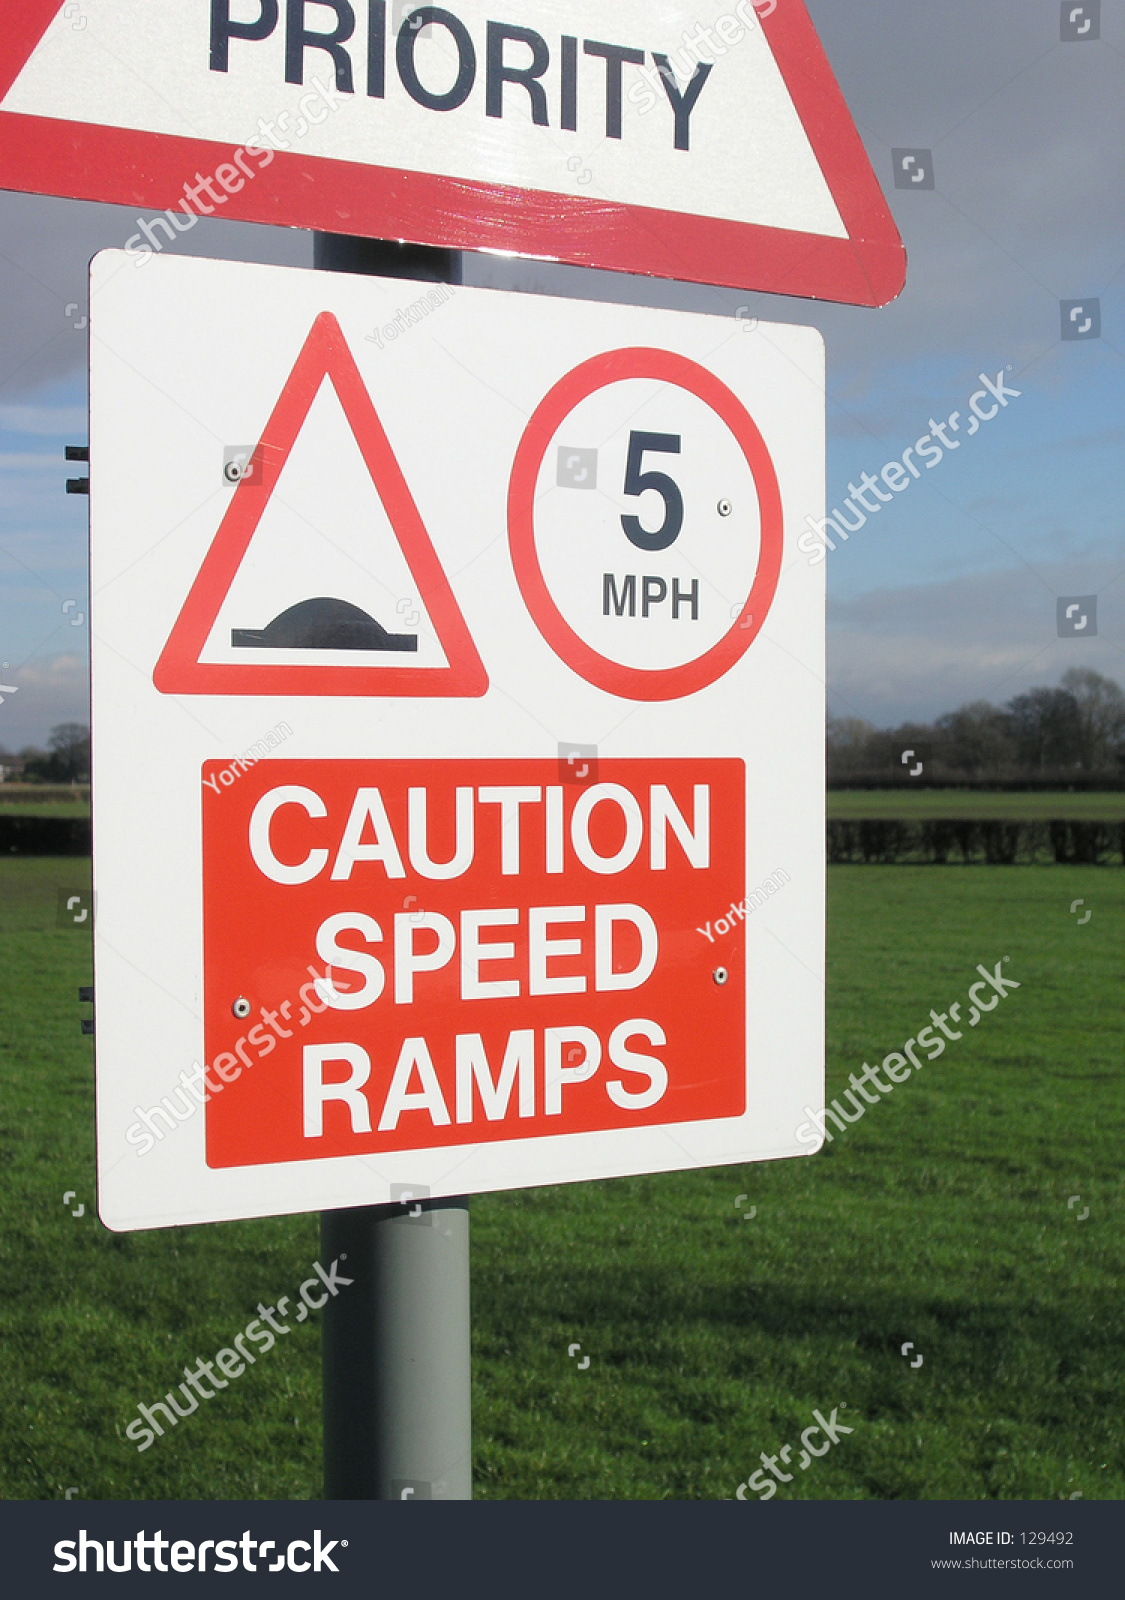 Speed Ramps Sign Stock Photo 129492 : Shutterstock